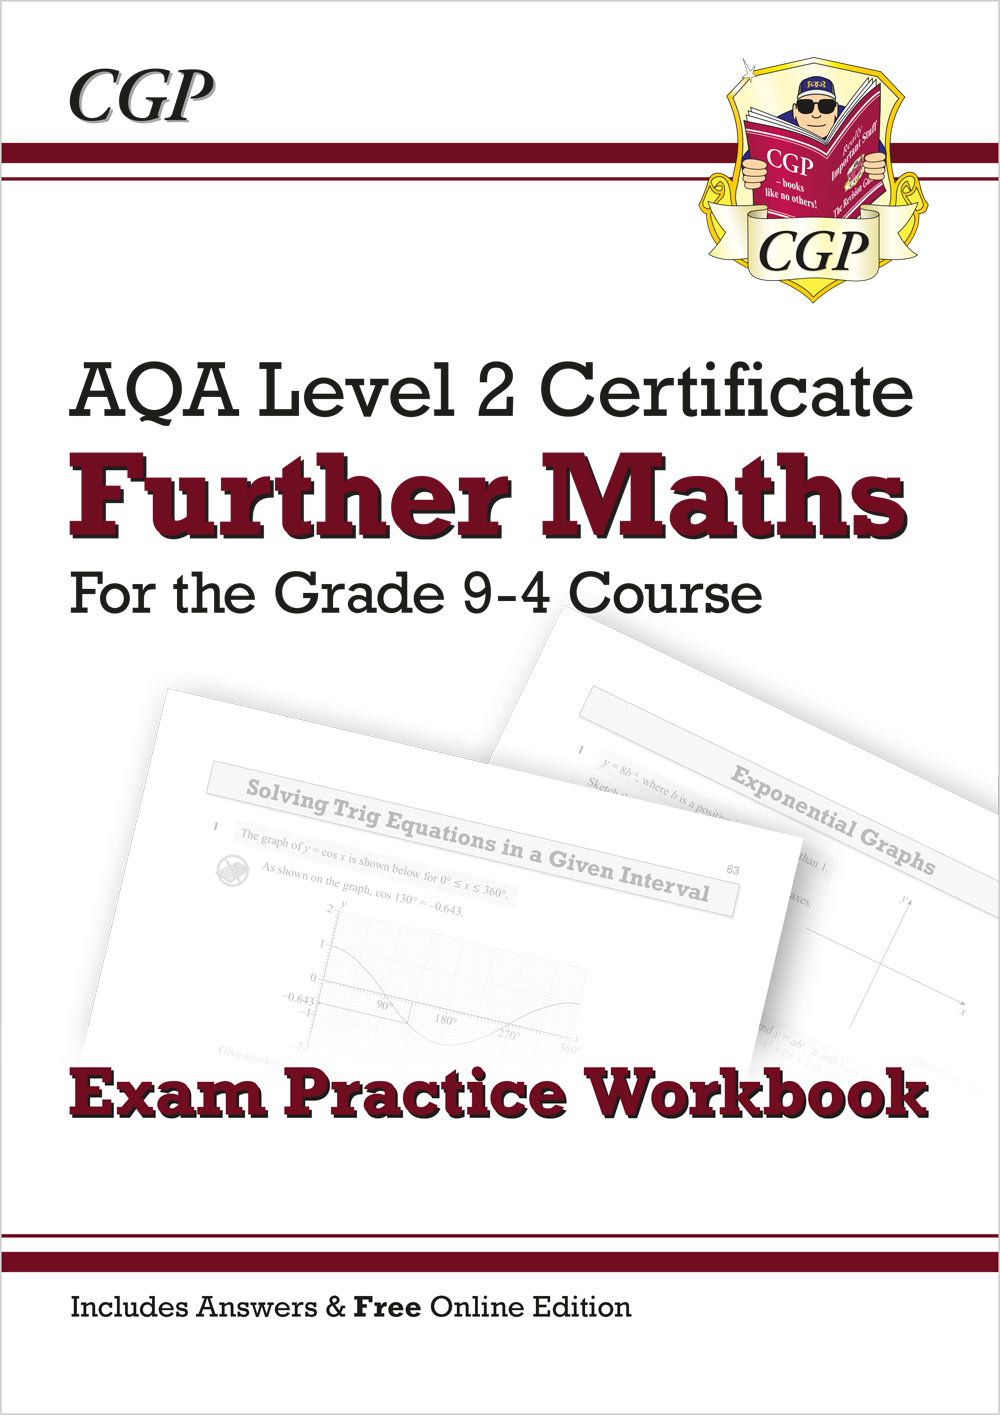 MAQI42 - New Grade 9-4 AQA Level 2 Certificate: Further Maths - Exam Practice Workbook (with Ans & O